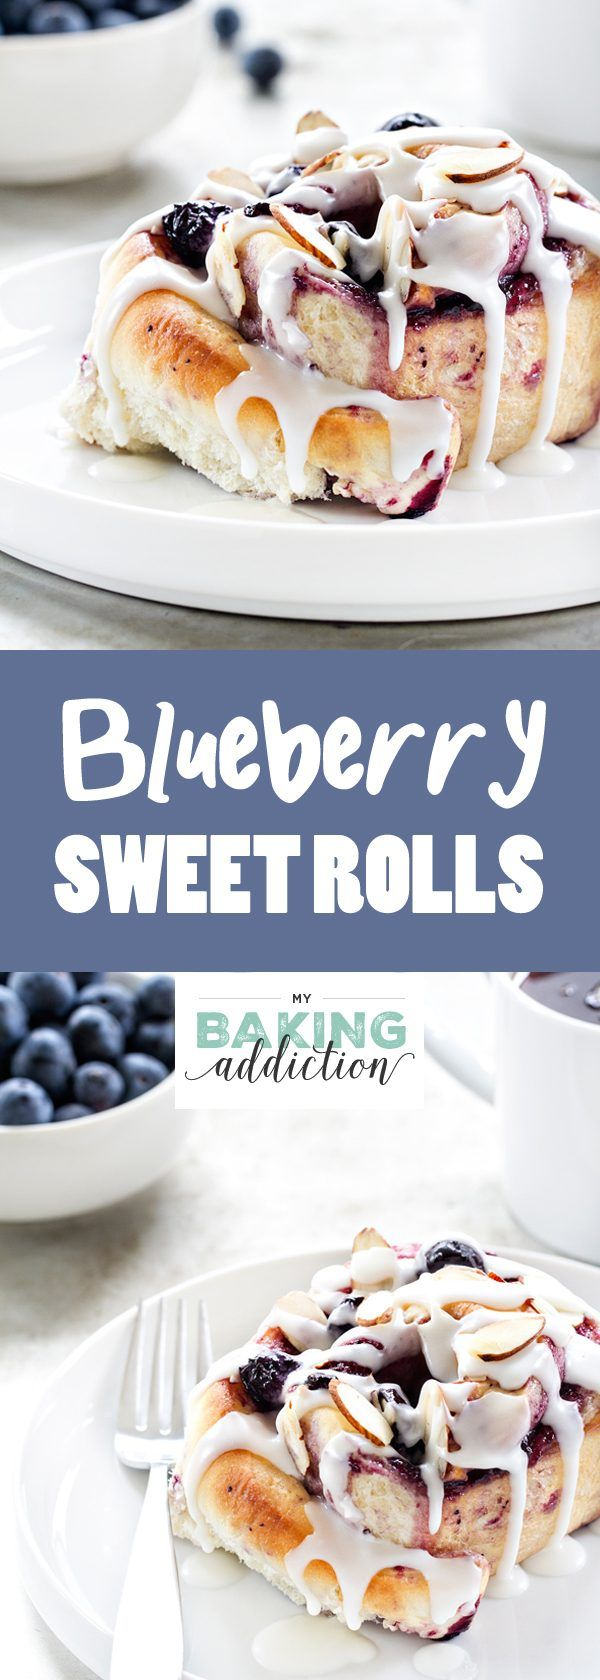 Blueberry Sweet Rolls                                                       …